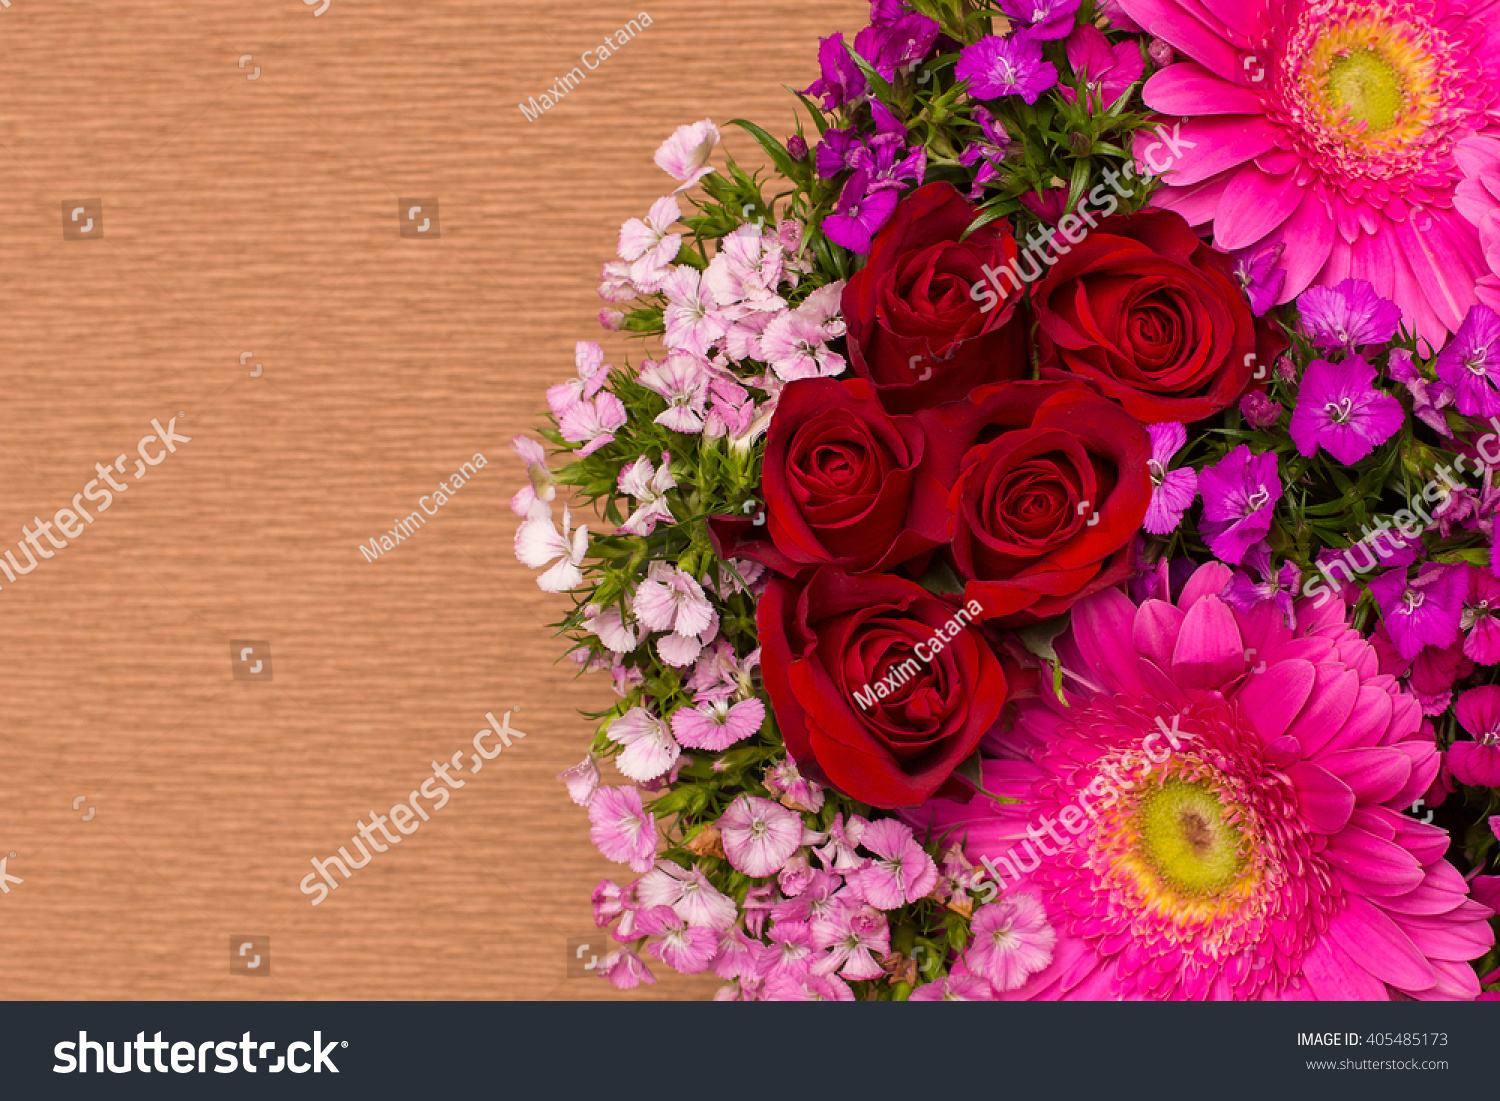 Gift Box With Flowers Design Of Different Type Of Flowers Decor